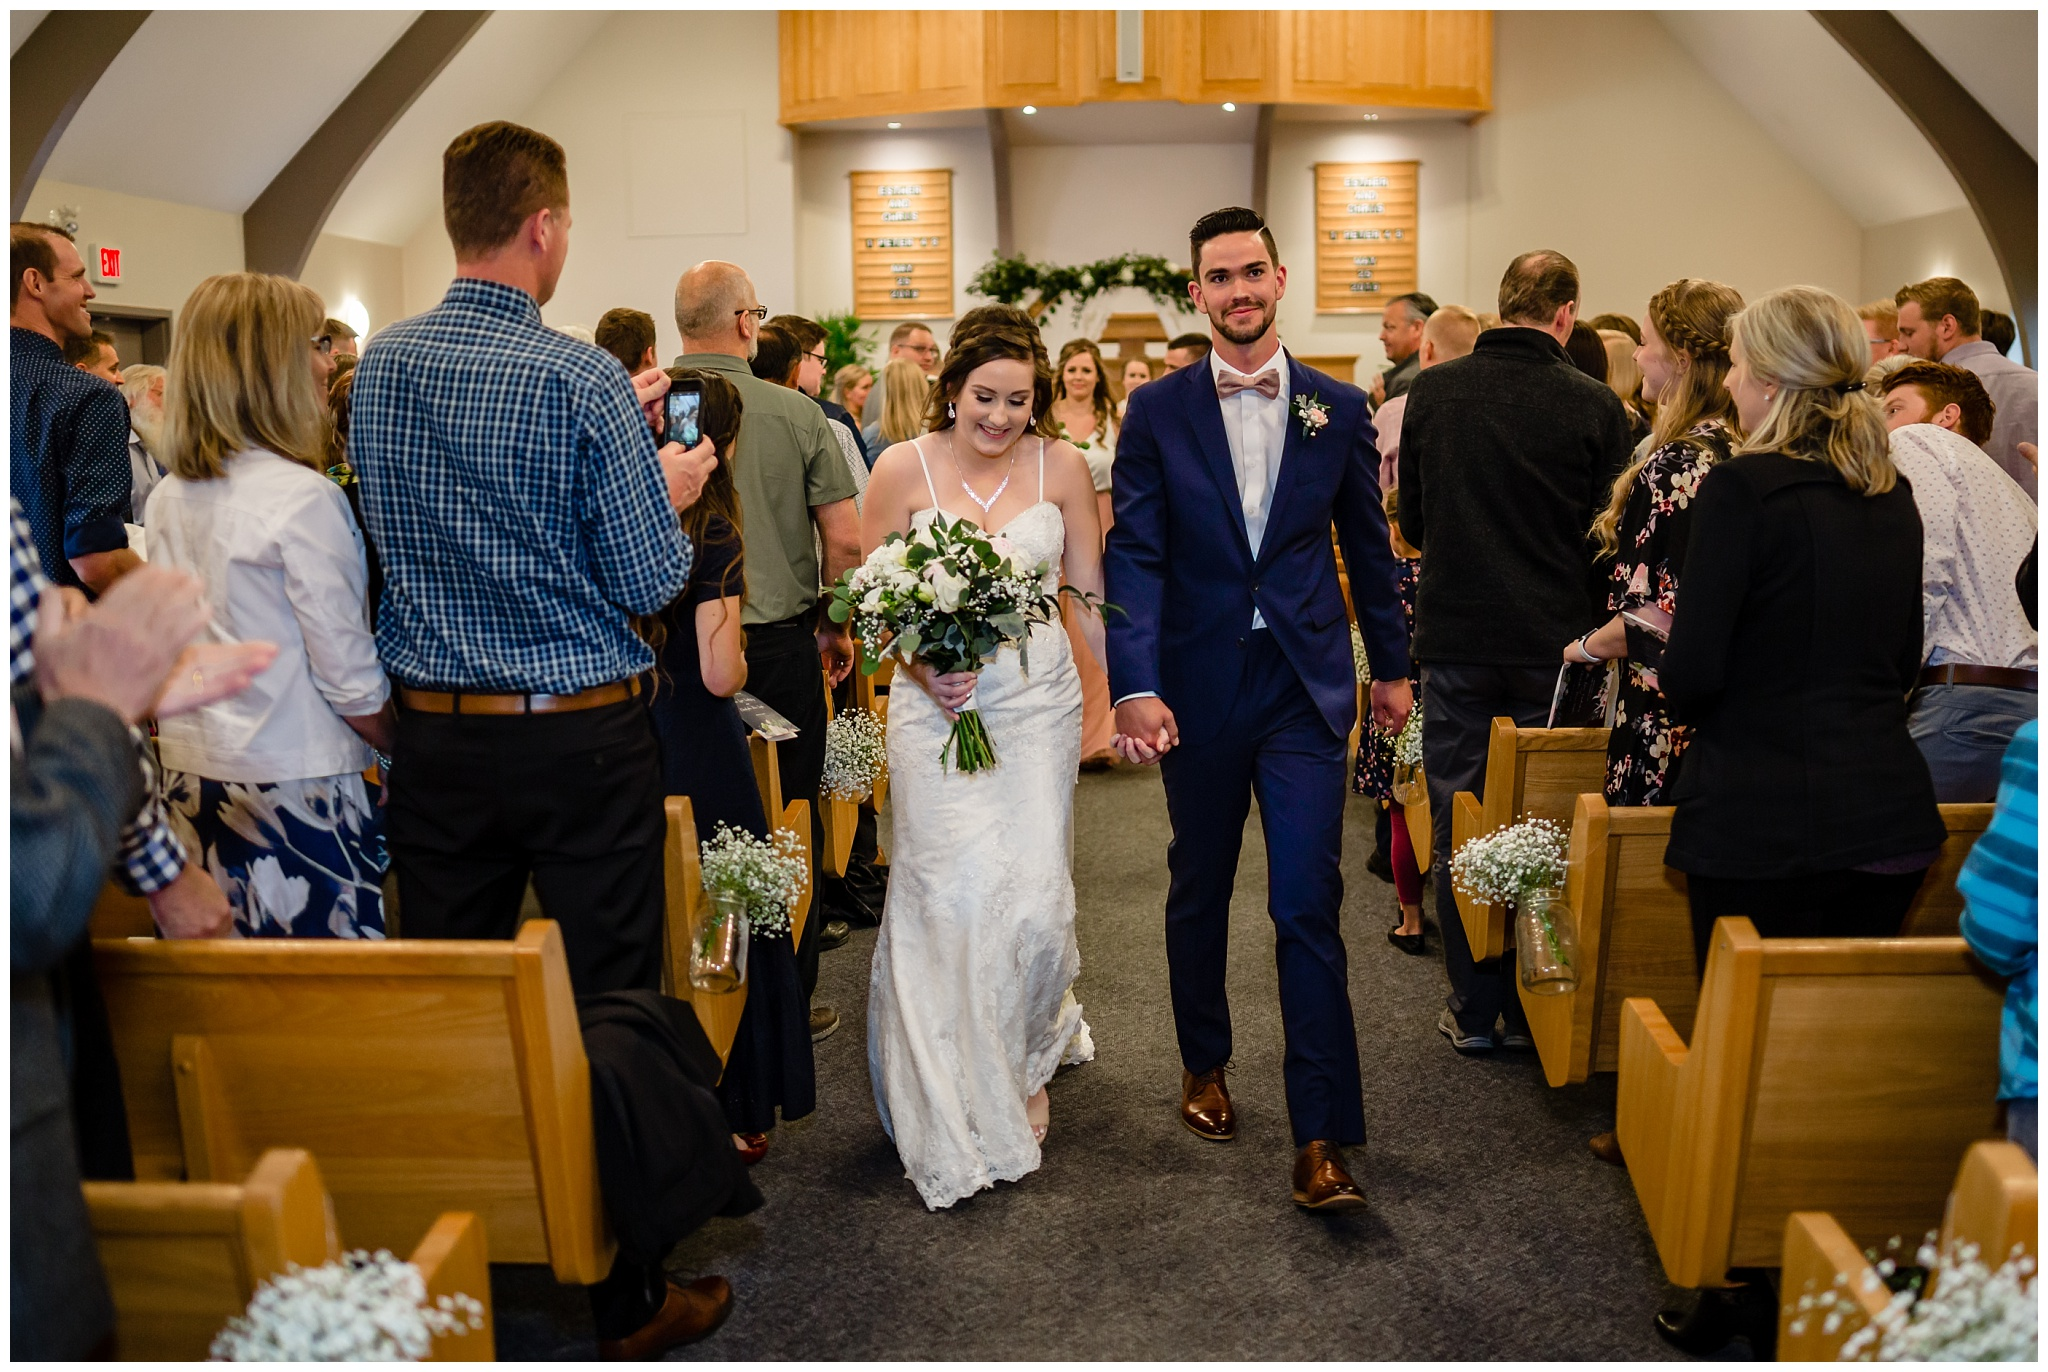 Cloverdale Canadian Reformed Church Wedding Sendall Garden Bride Groom Portraits Christian Couples Best Photographer in Langley Surrey British Columbia_0027.jpg